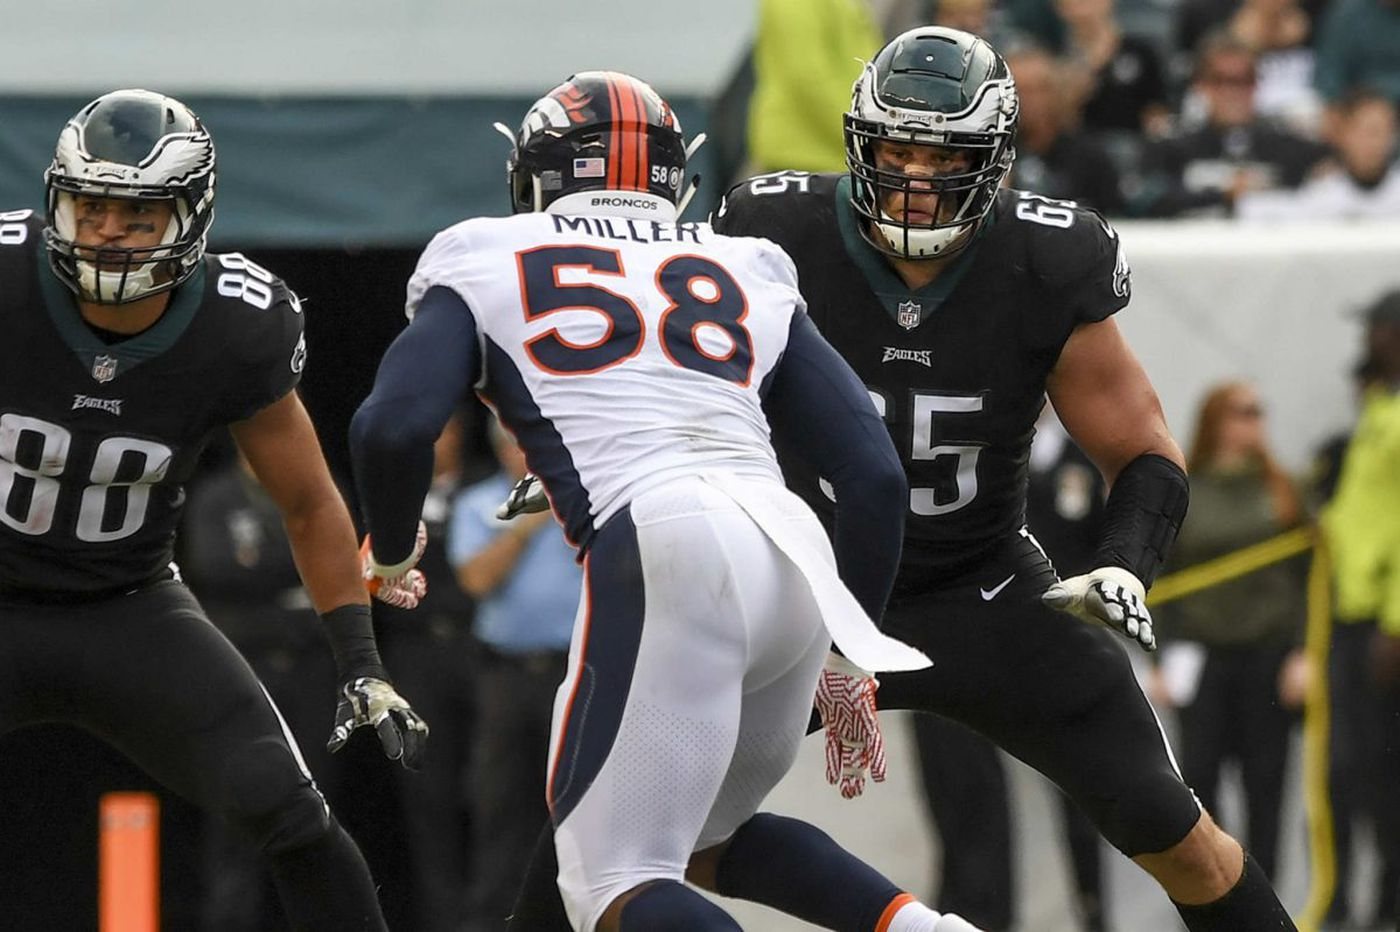 King for a day: Lane Johnson gets best of Von Miller